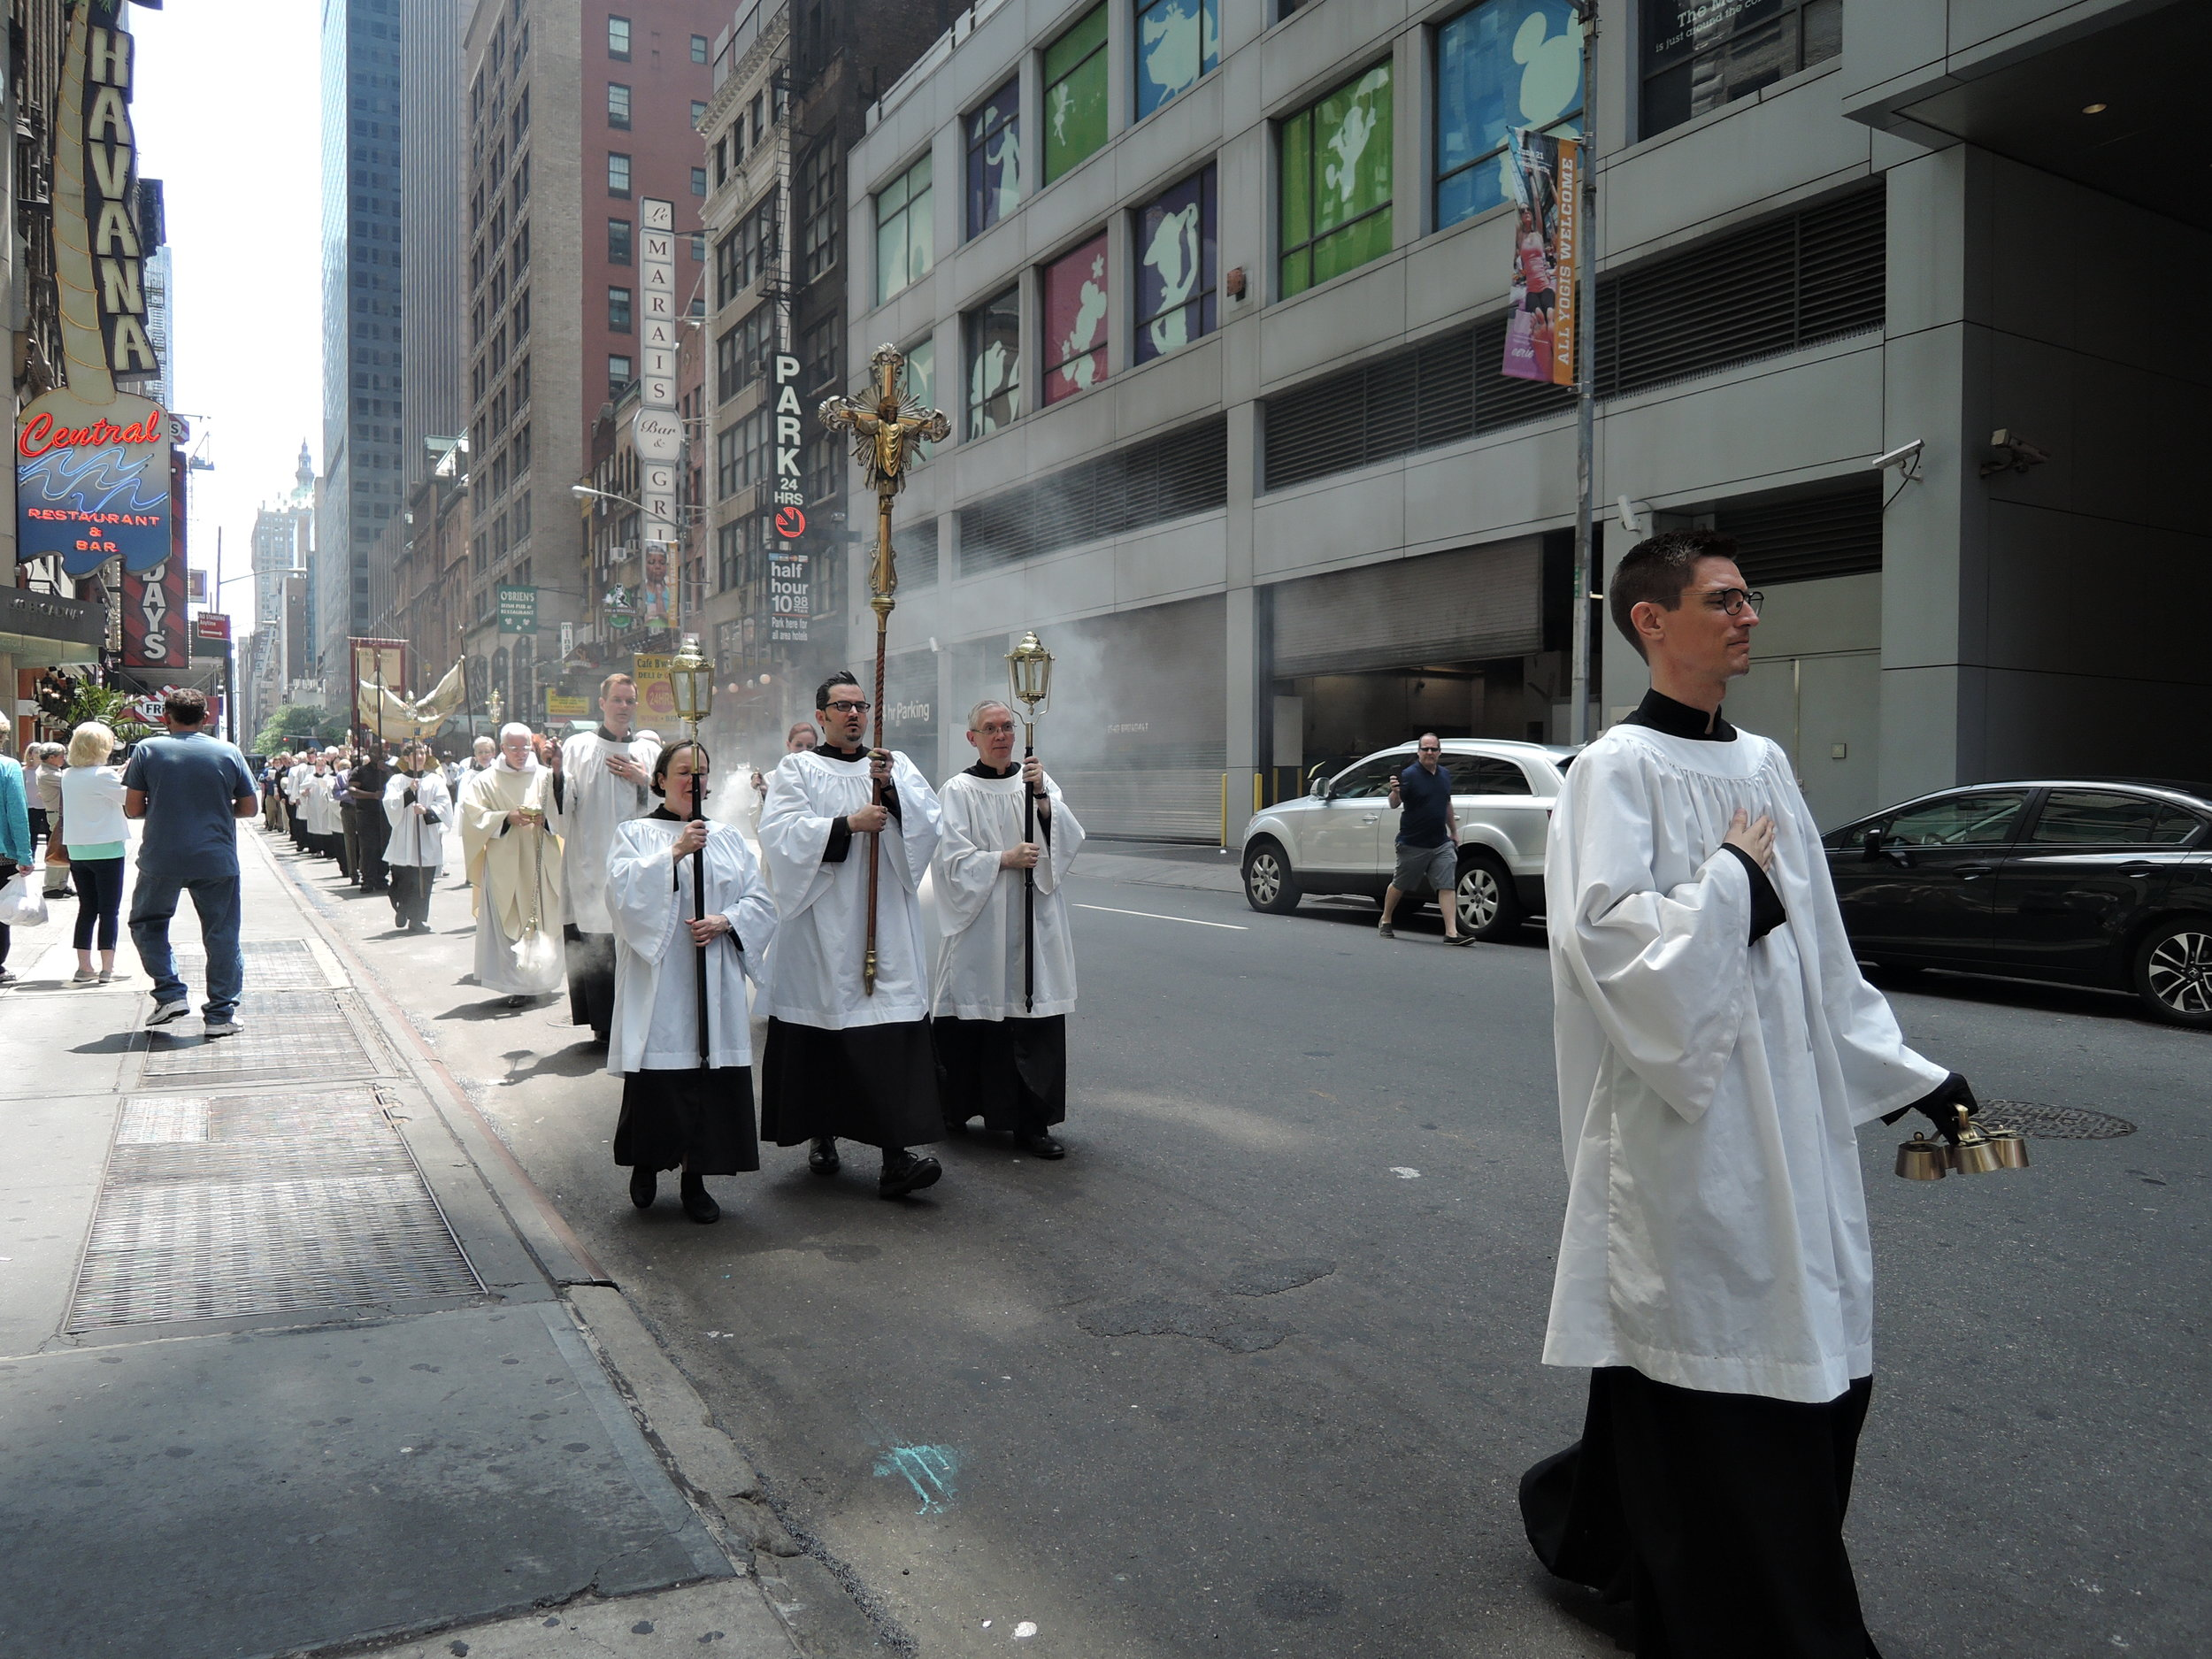 The Procession from the church to Times Square.